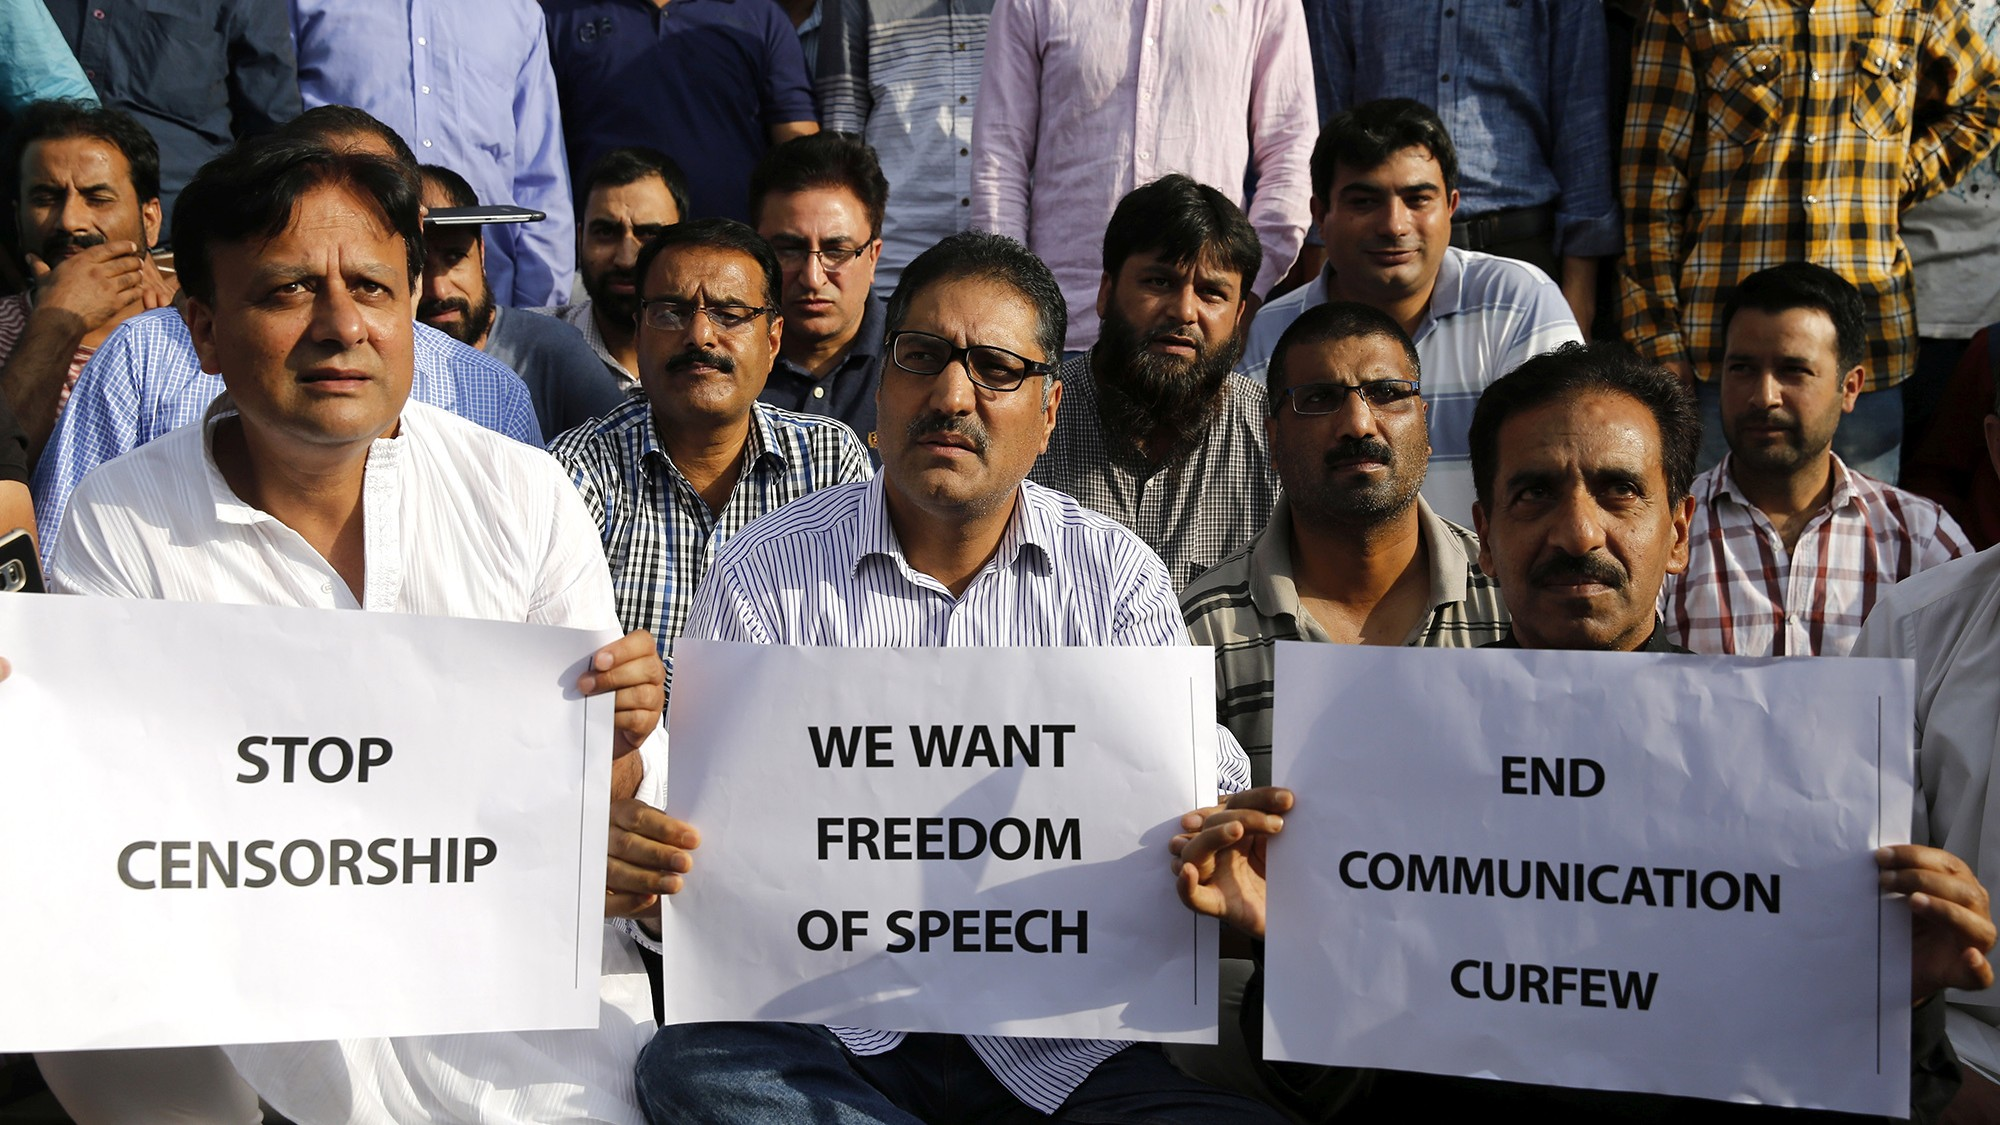 The Indian government shut down media in Kashmir as tensions rise